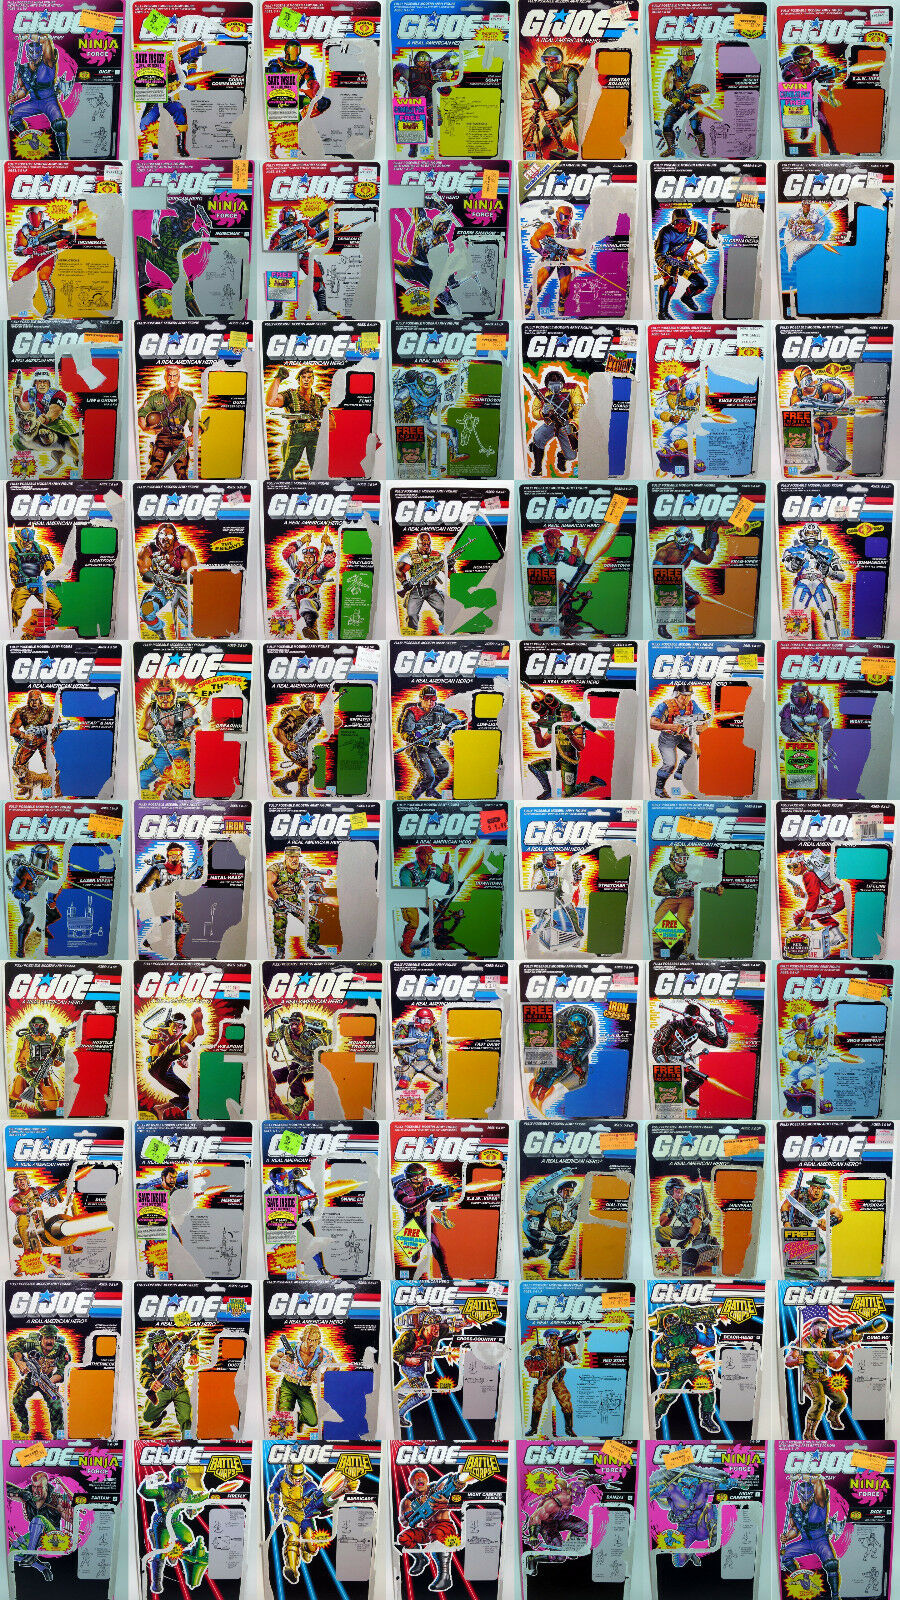 Vintage GI Joe ARAH Uncut File Cards - YOUR CHOICE - Hasbro 1982 - 1995 G.I. Joe